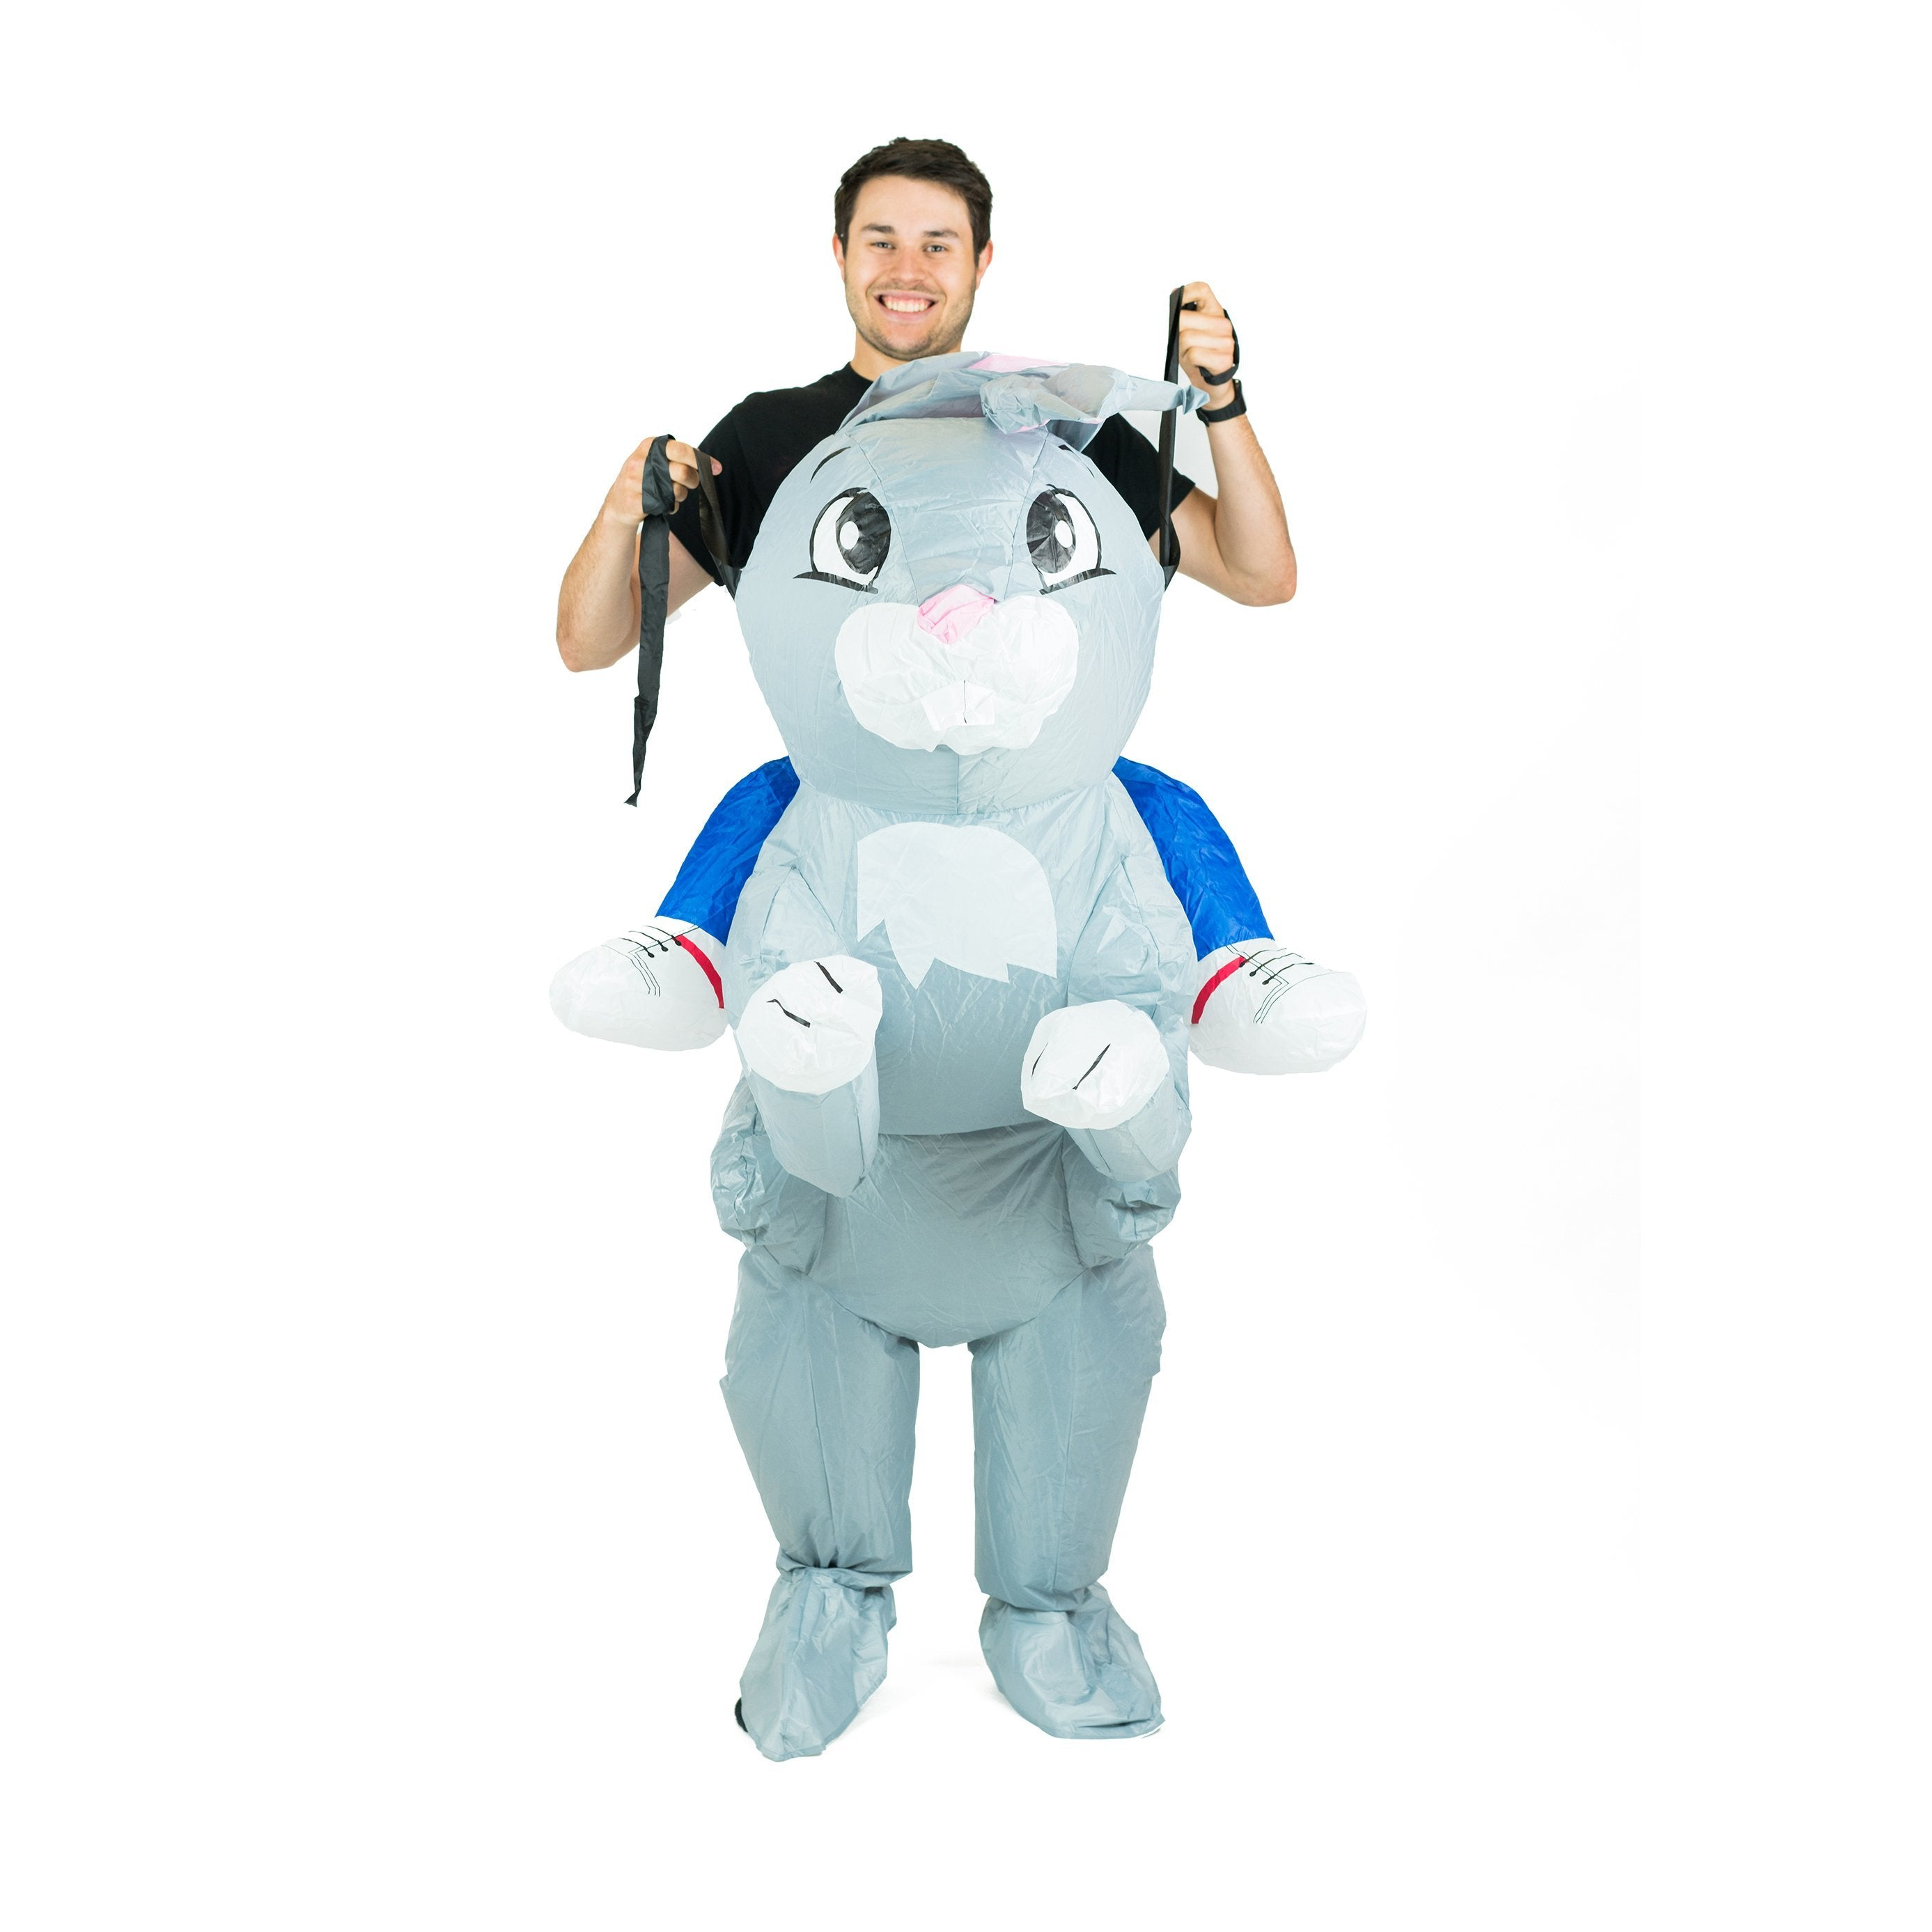 Bodysocks - Inflatable Rabbit Costume